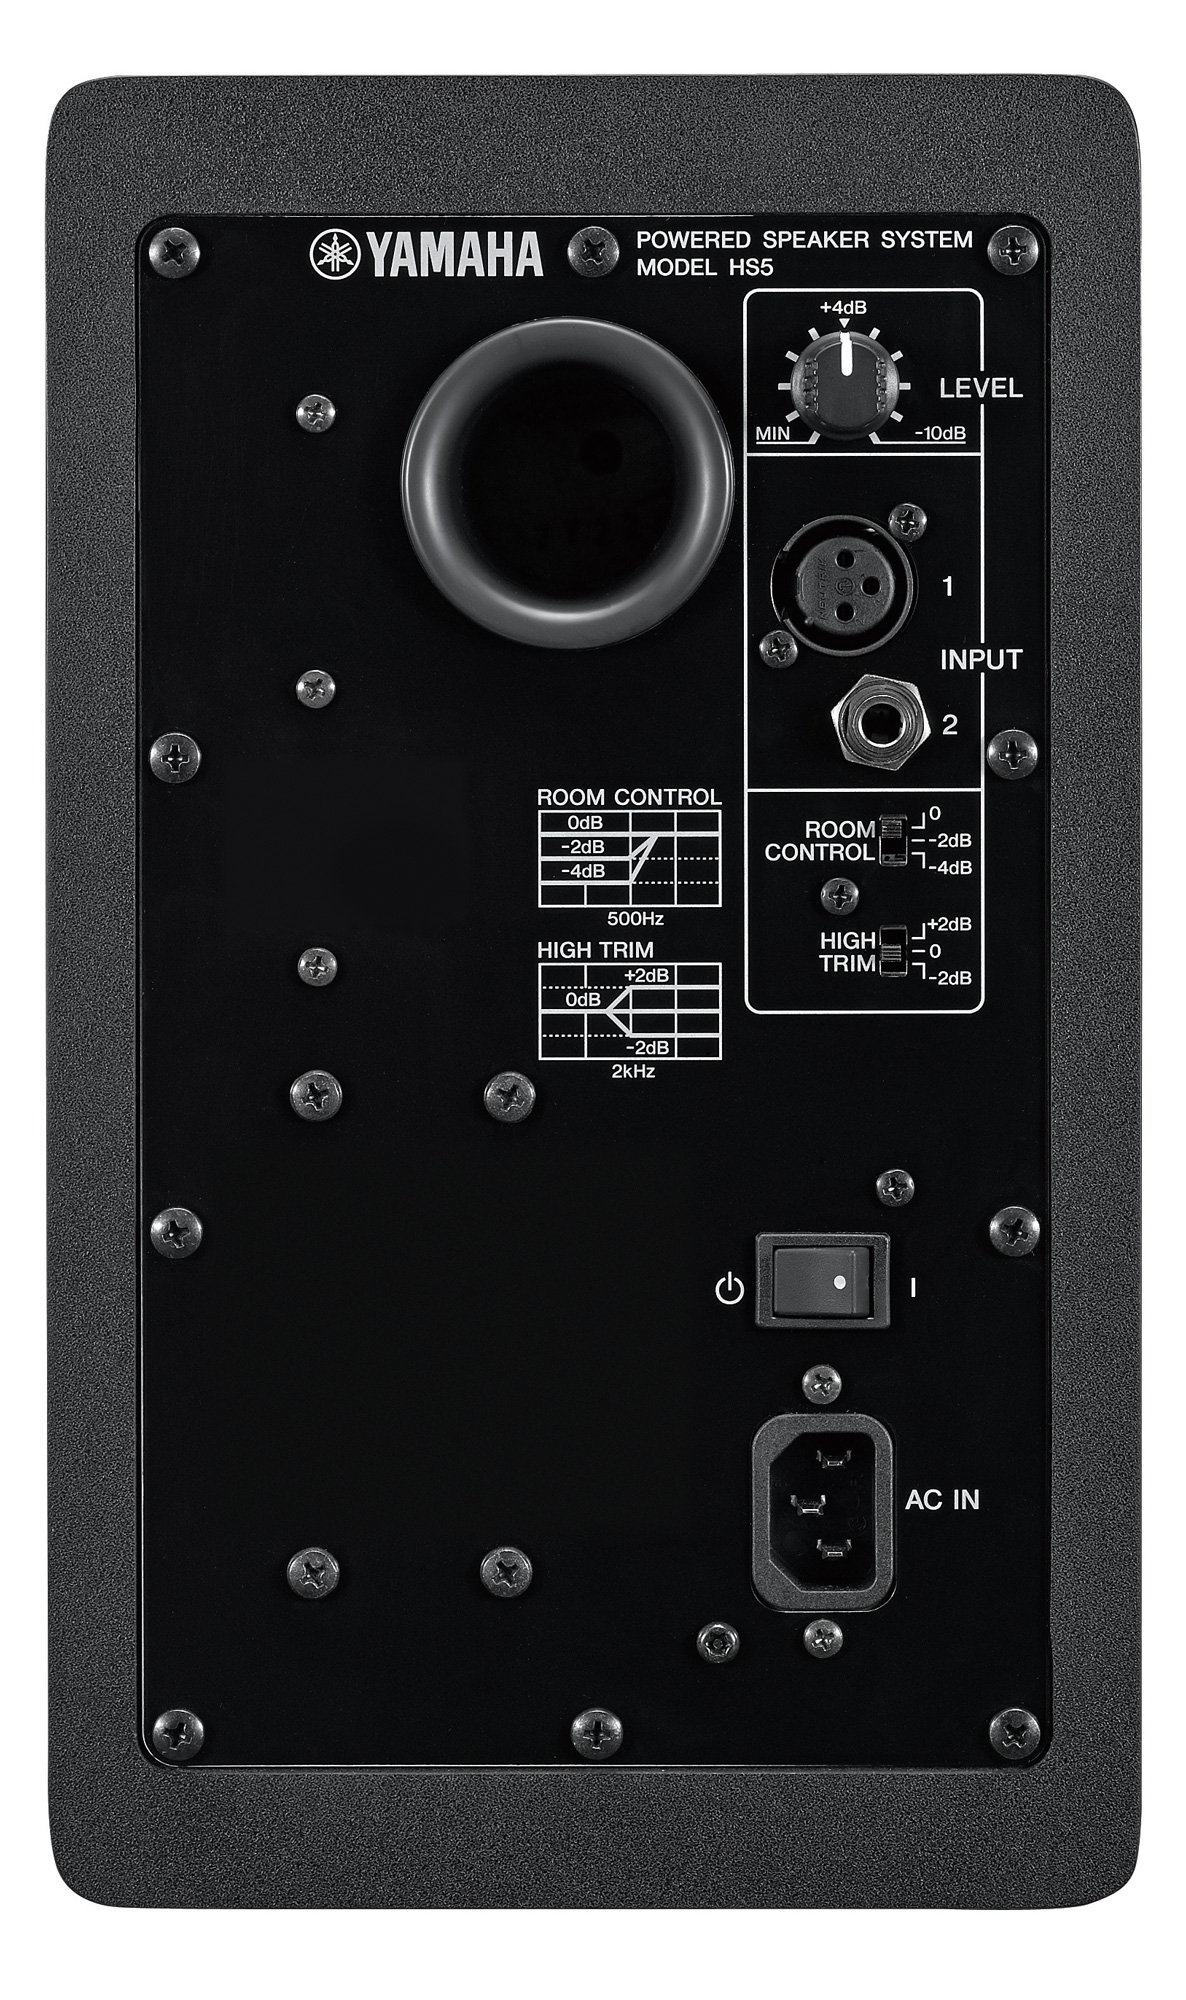 Image of the rear of the Yamaha HS5 studio monitor.